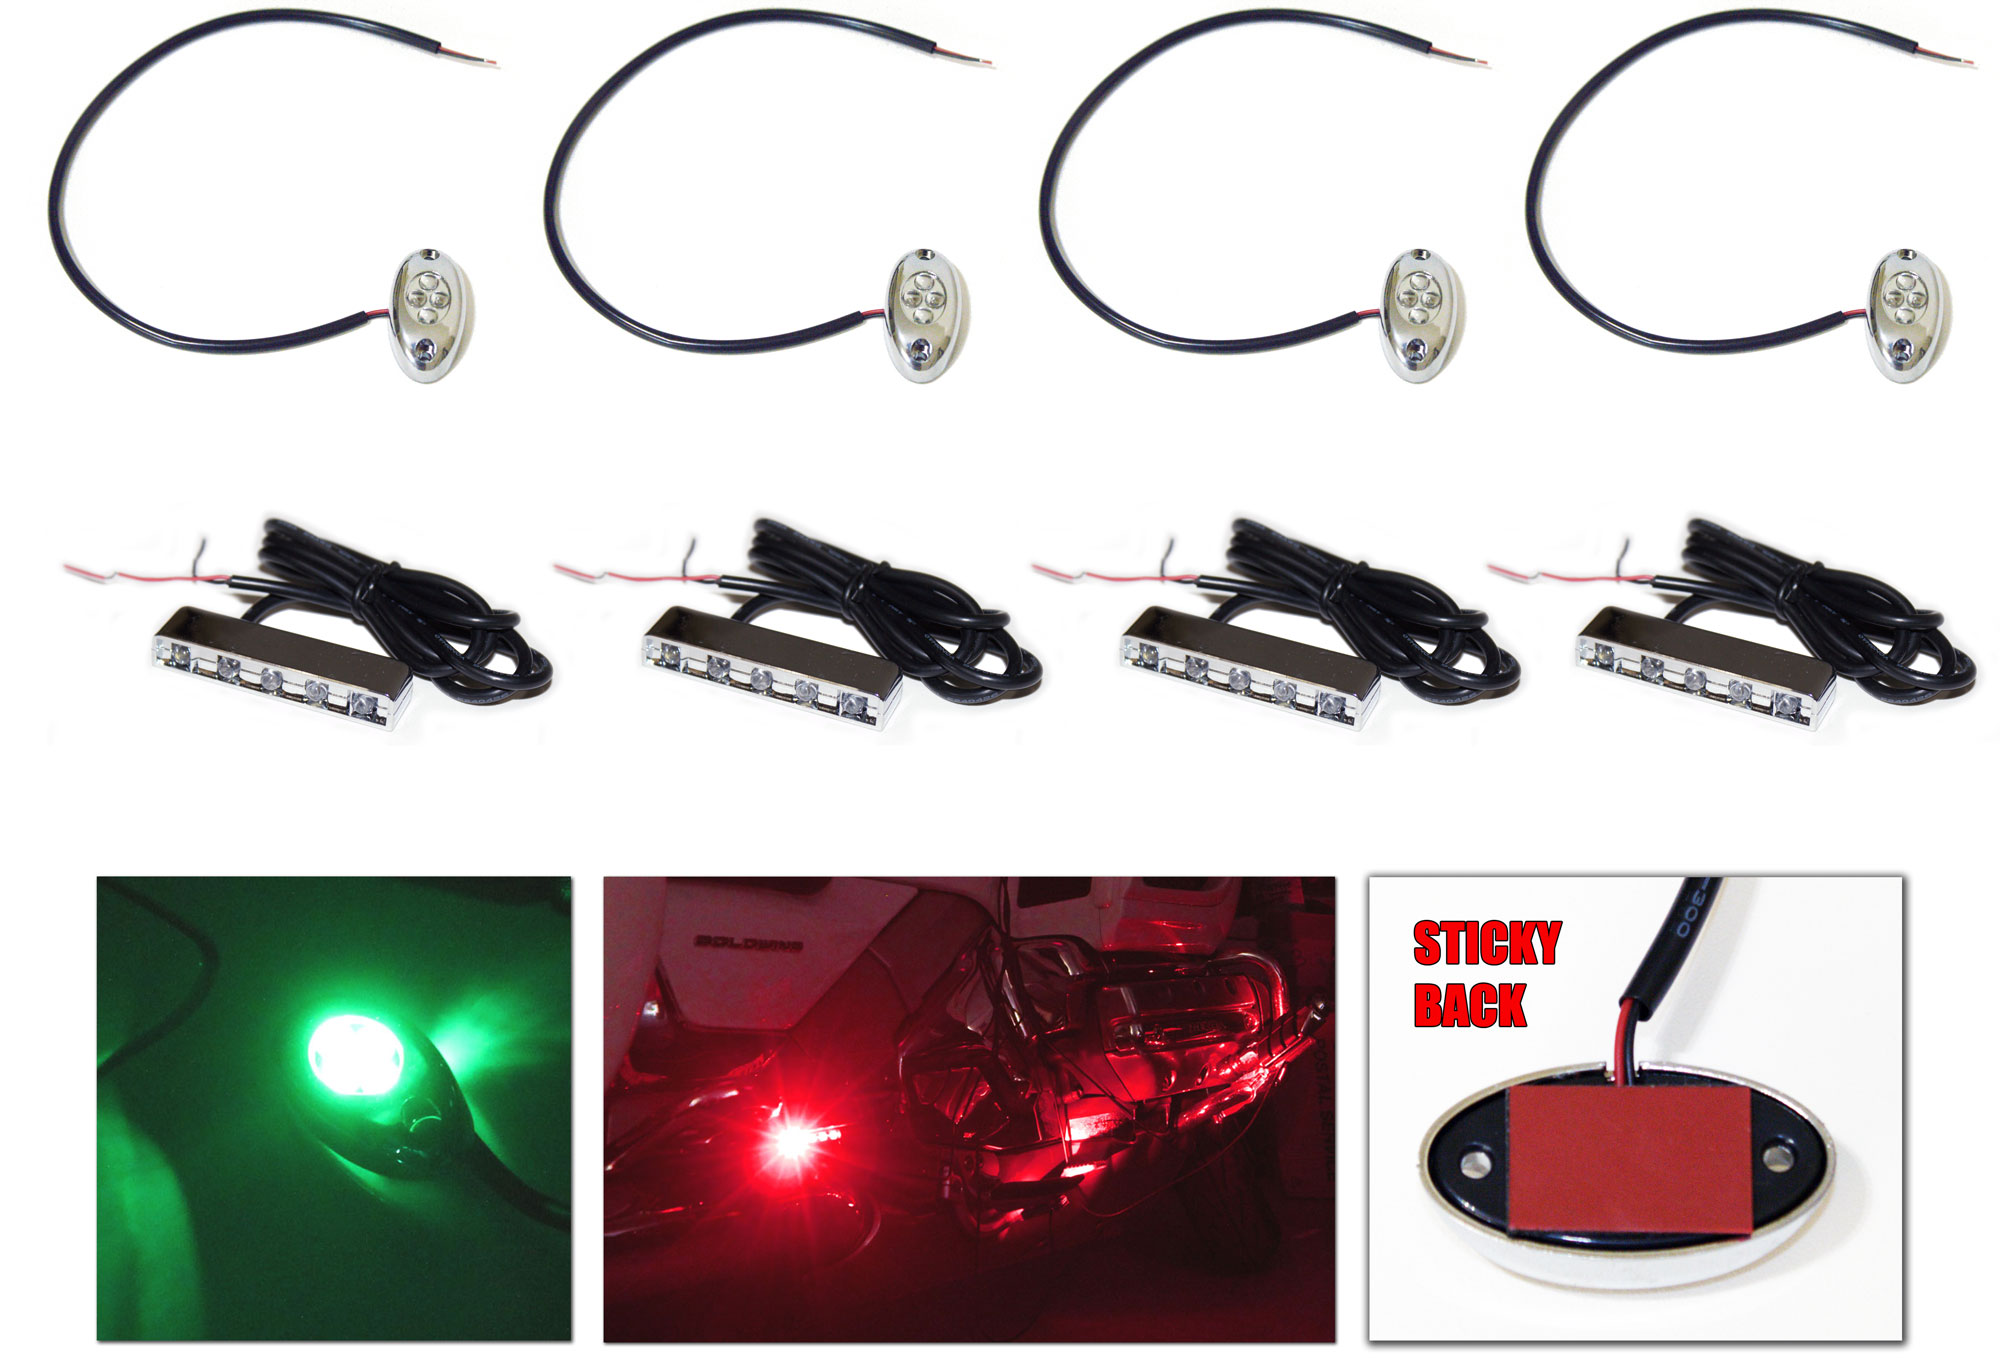 hight resolution of complete kit for wiring your motorcyle up or the interior of your car with this complete kit you have nothing to worry about just have extra wire on hand